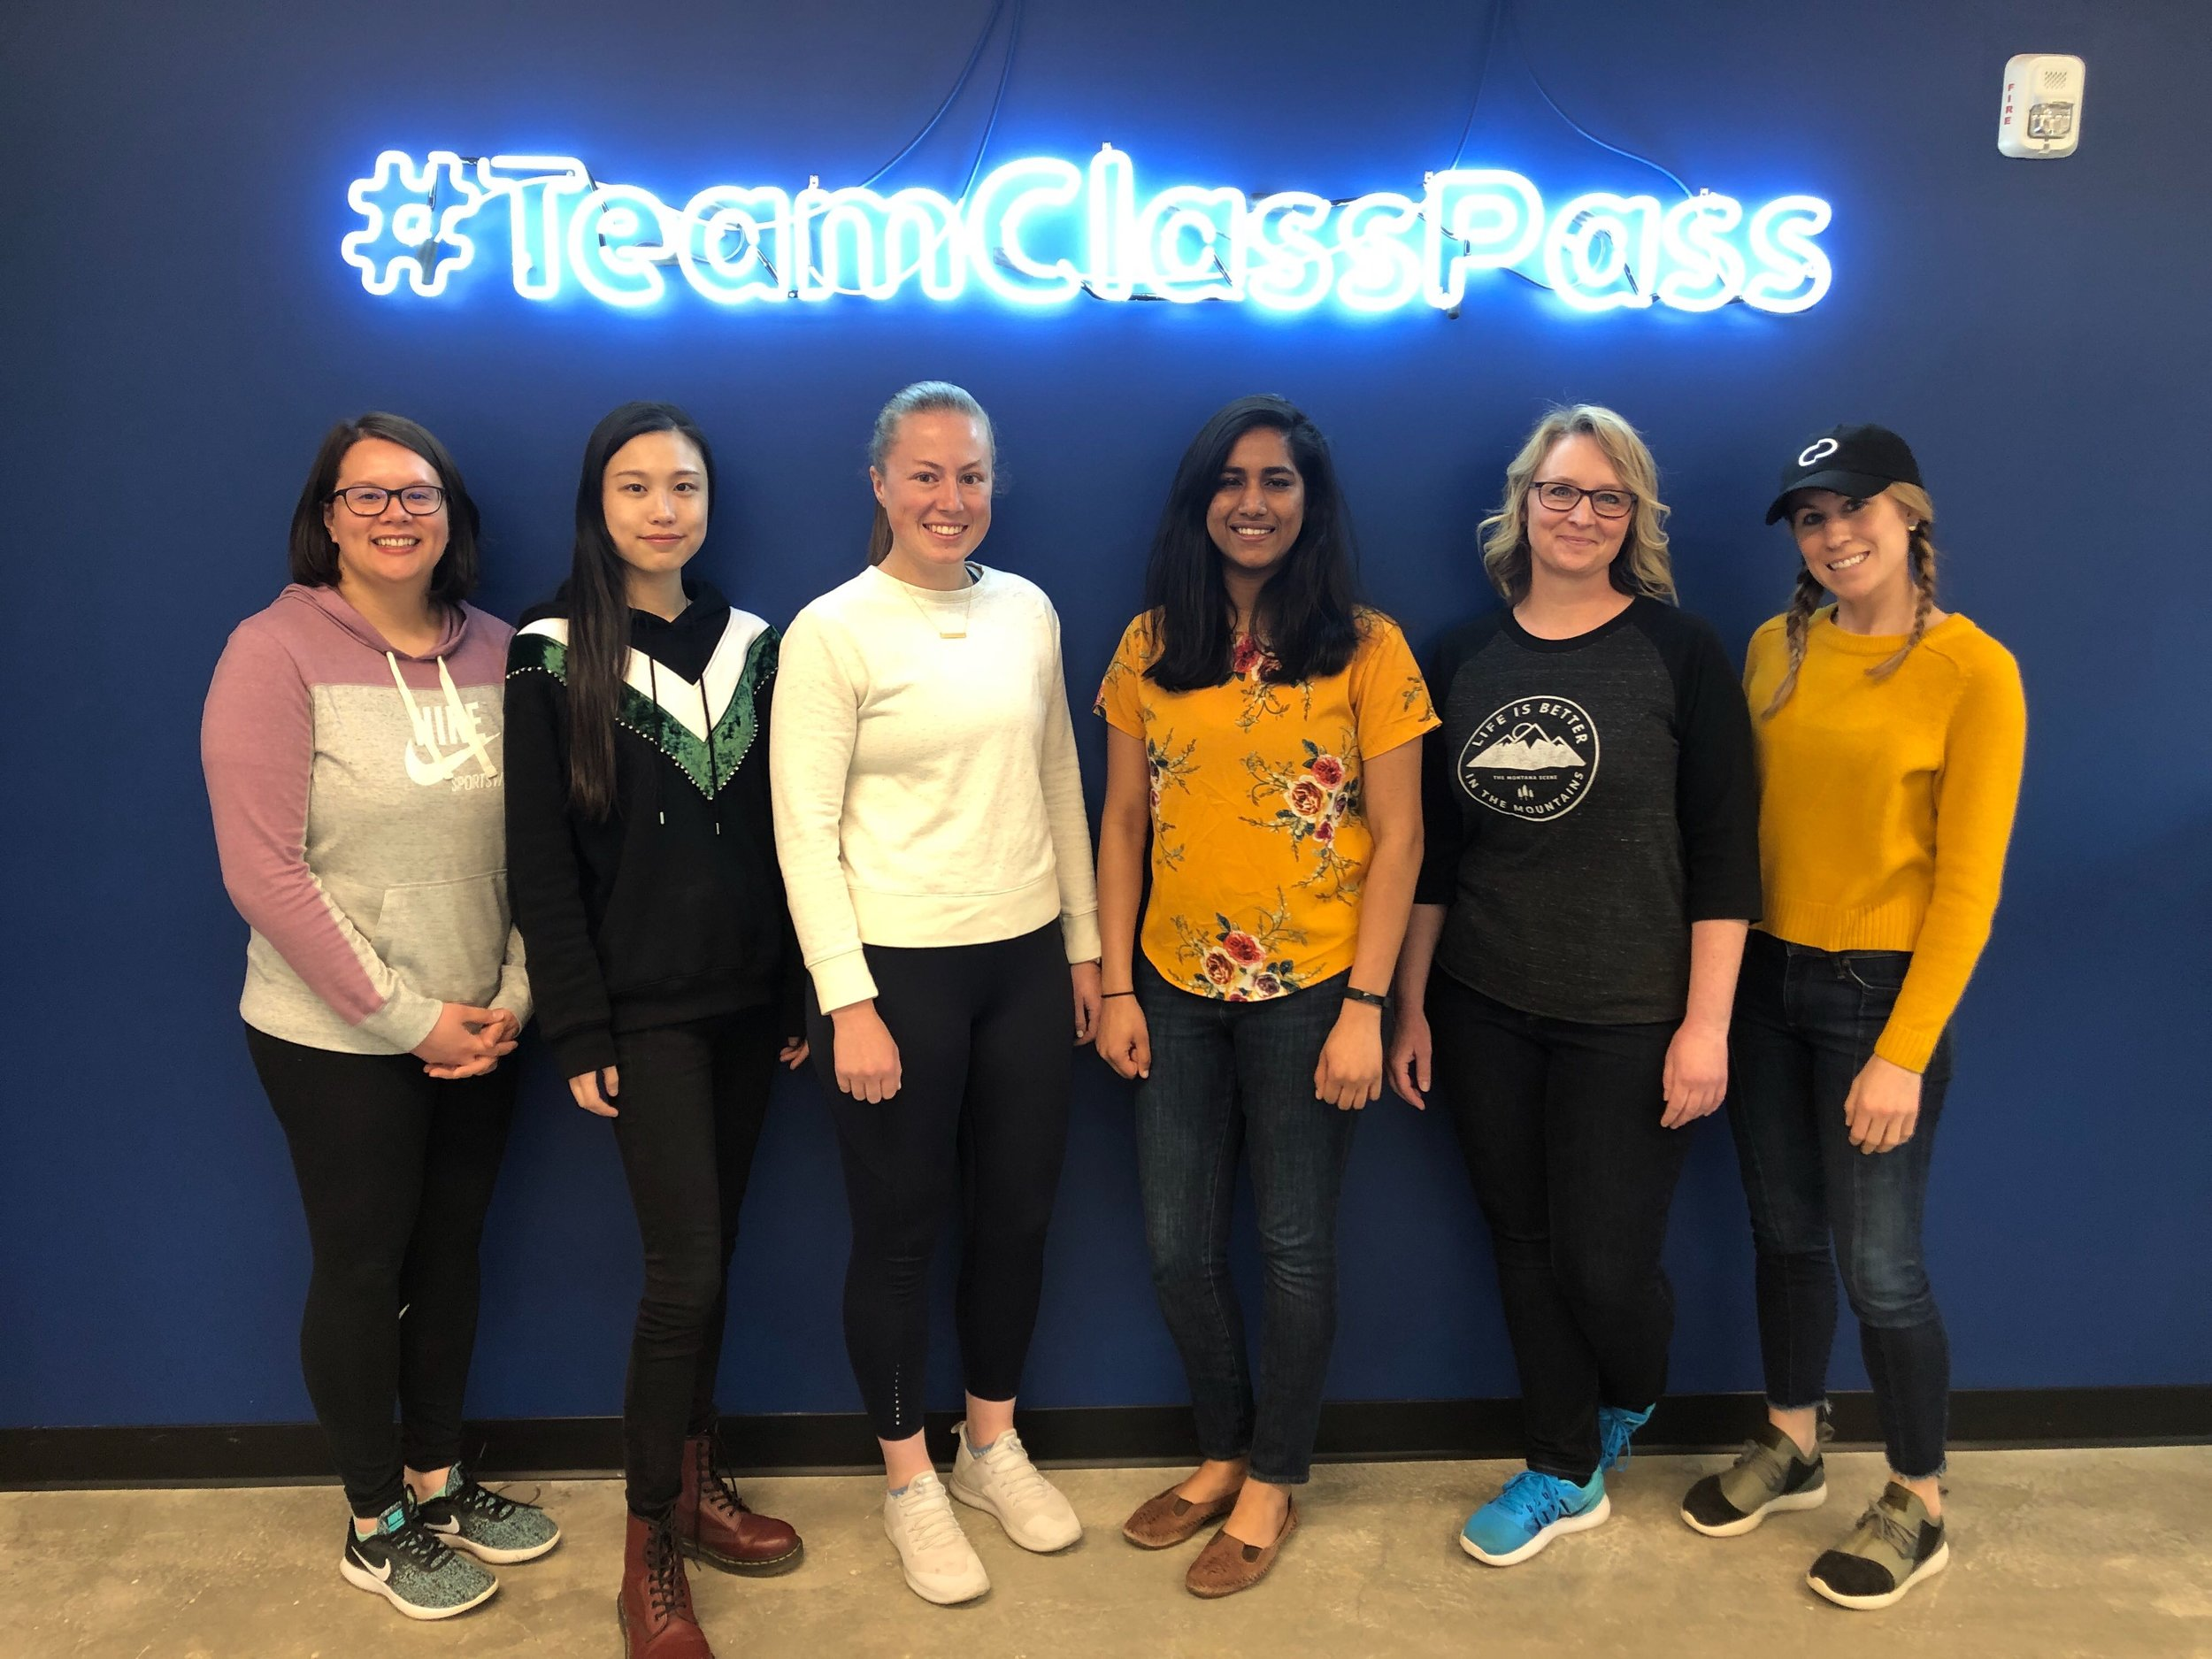 Christy with her fellow women engineers at ClassPass